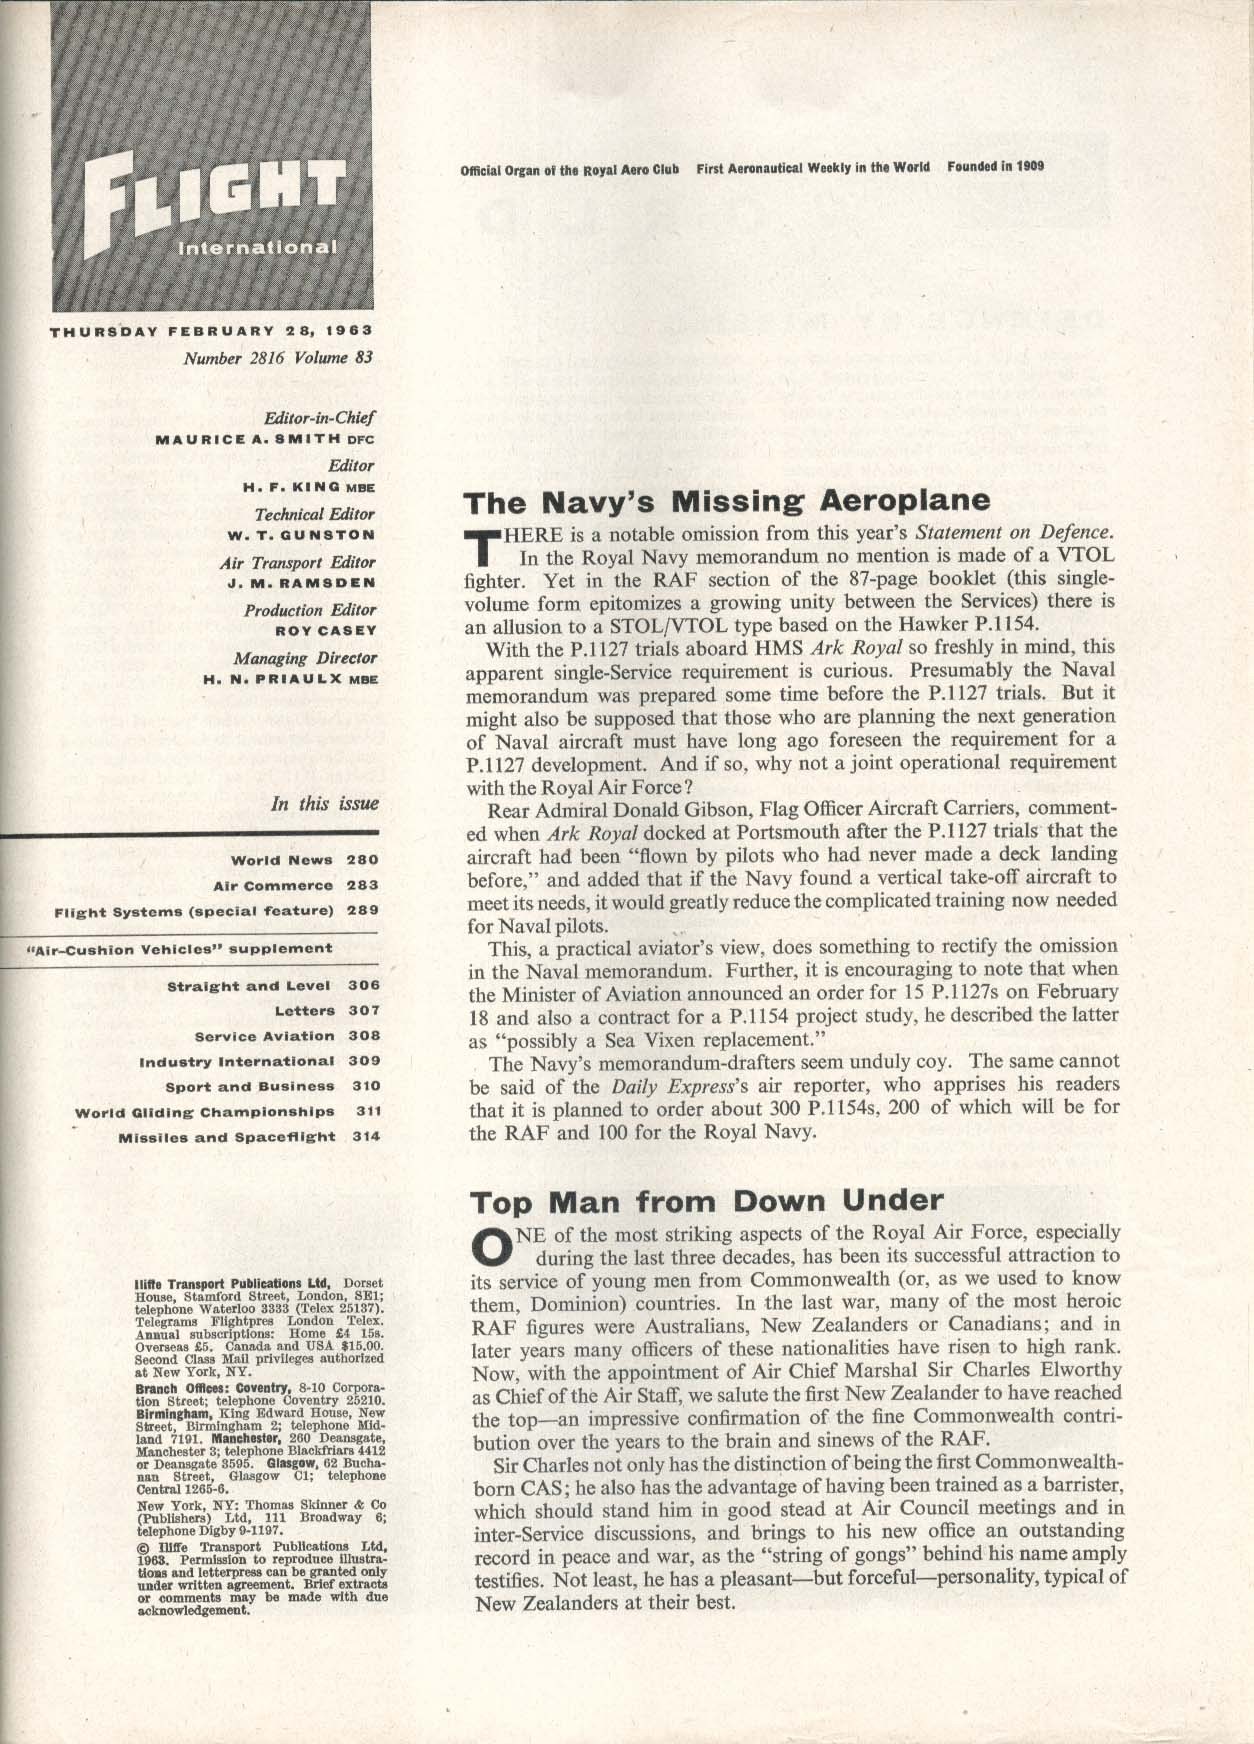 FLIGHT INTERNATIONAL Air-Cushion Vehicles Supplement Flight Systems 2/28 1963